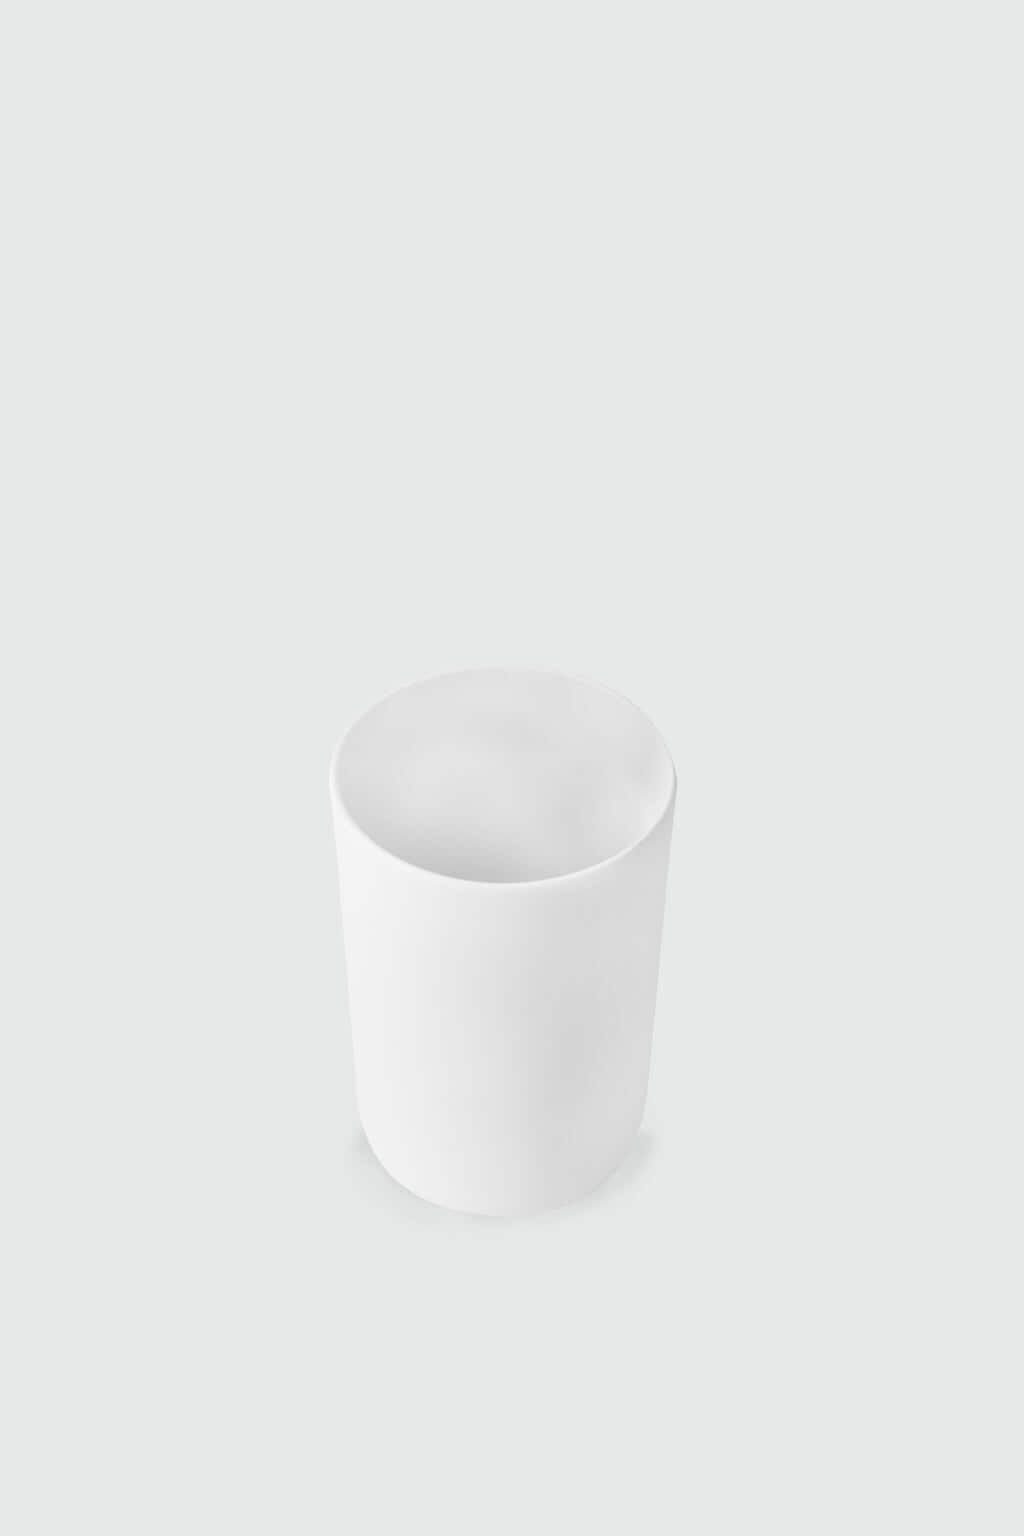 Slim Porcelain Cup 2939 White 2